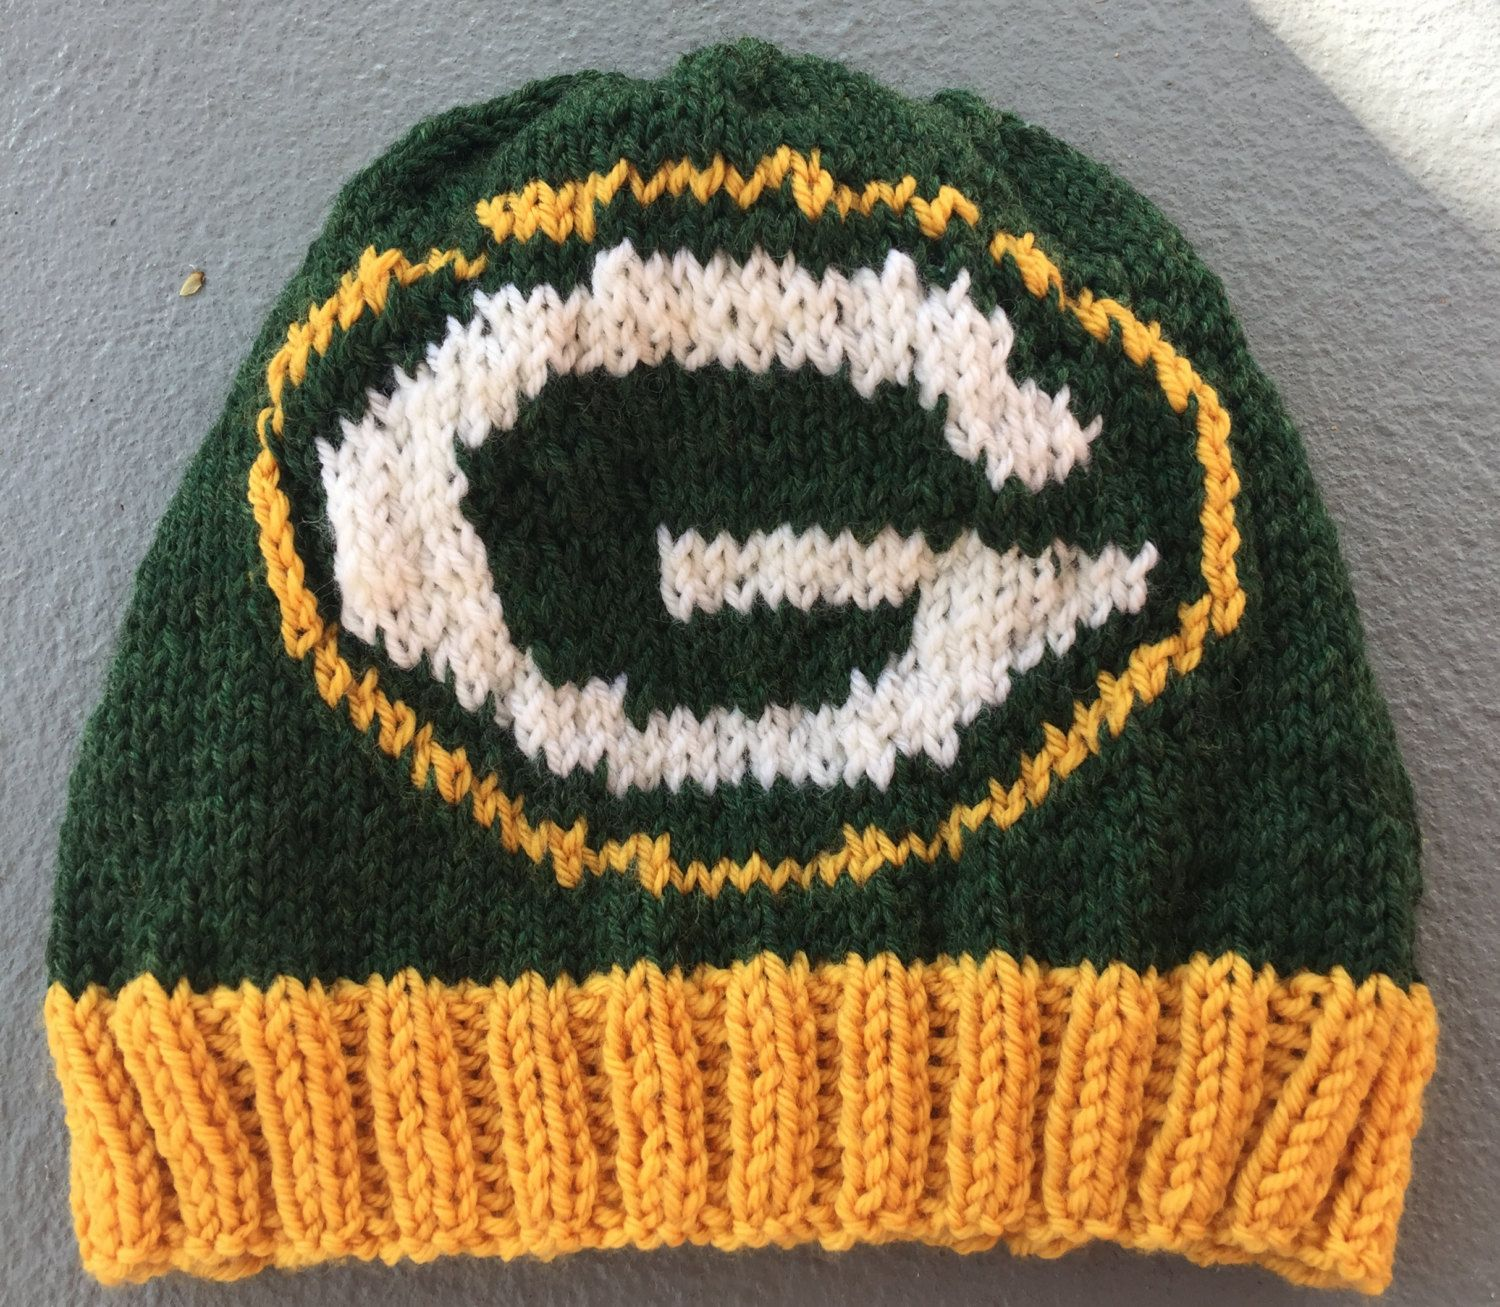 Green Bay Packers Logo Beanie Hat PATTERN - Ribbed Brim Intarsia ...